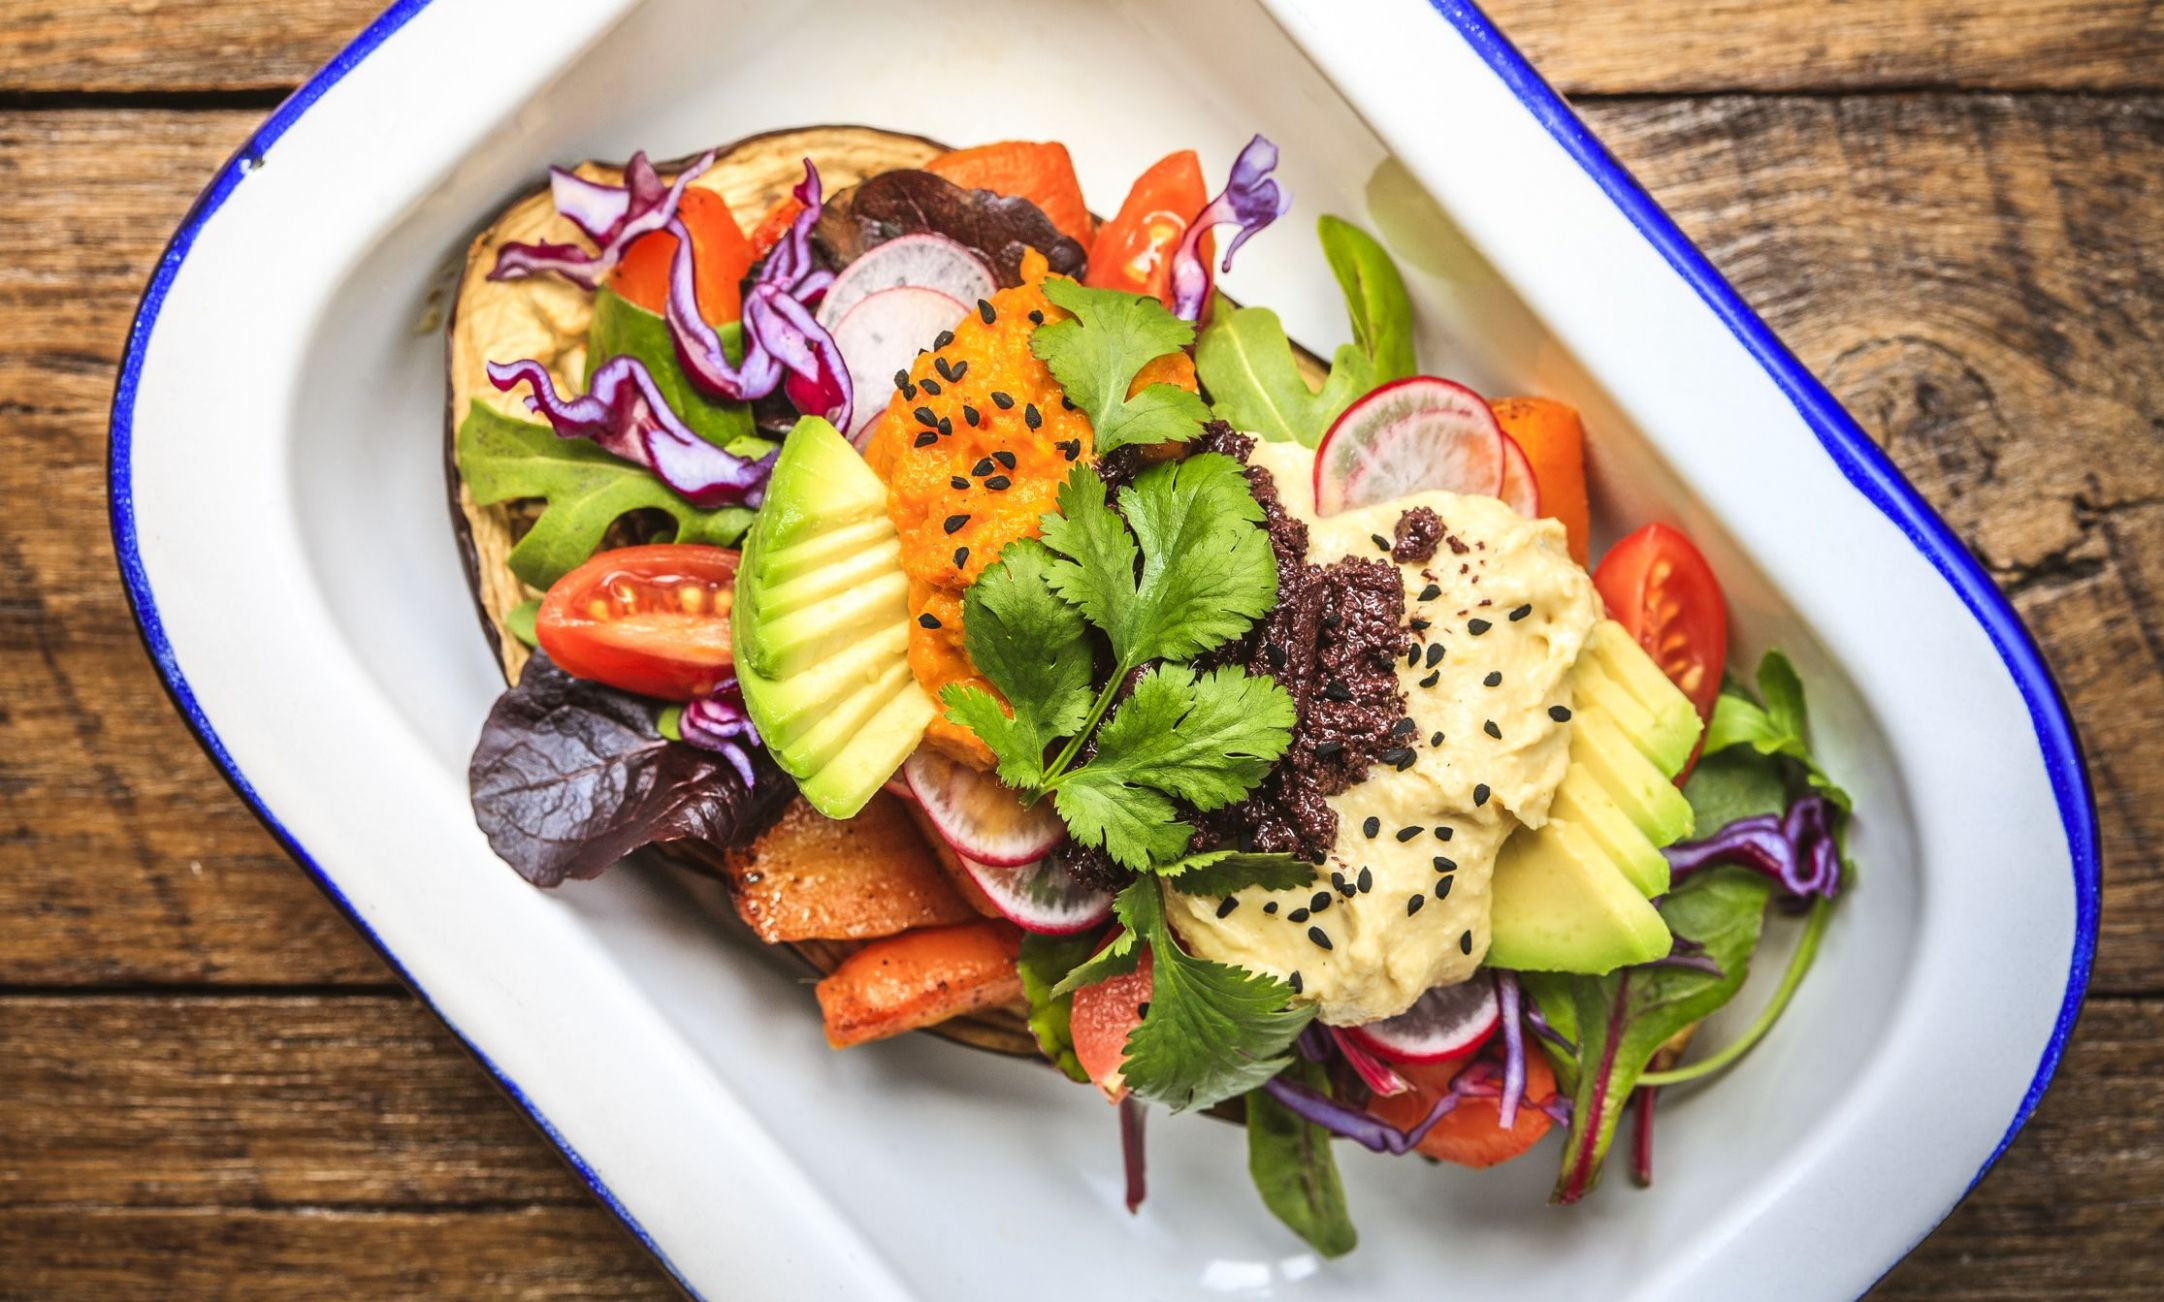 Atkins Diet: What to Eat, Cooking Tips, and Modifications